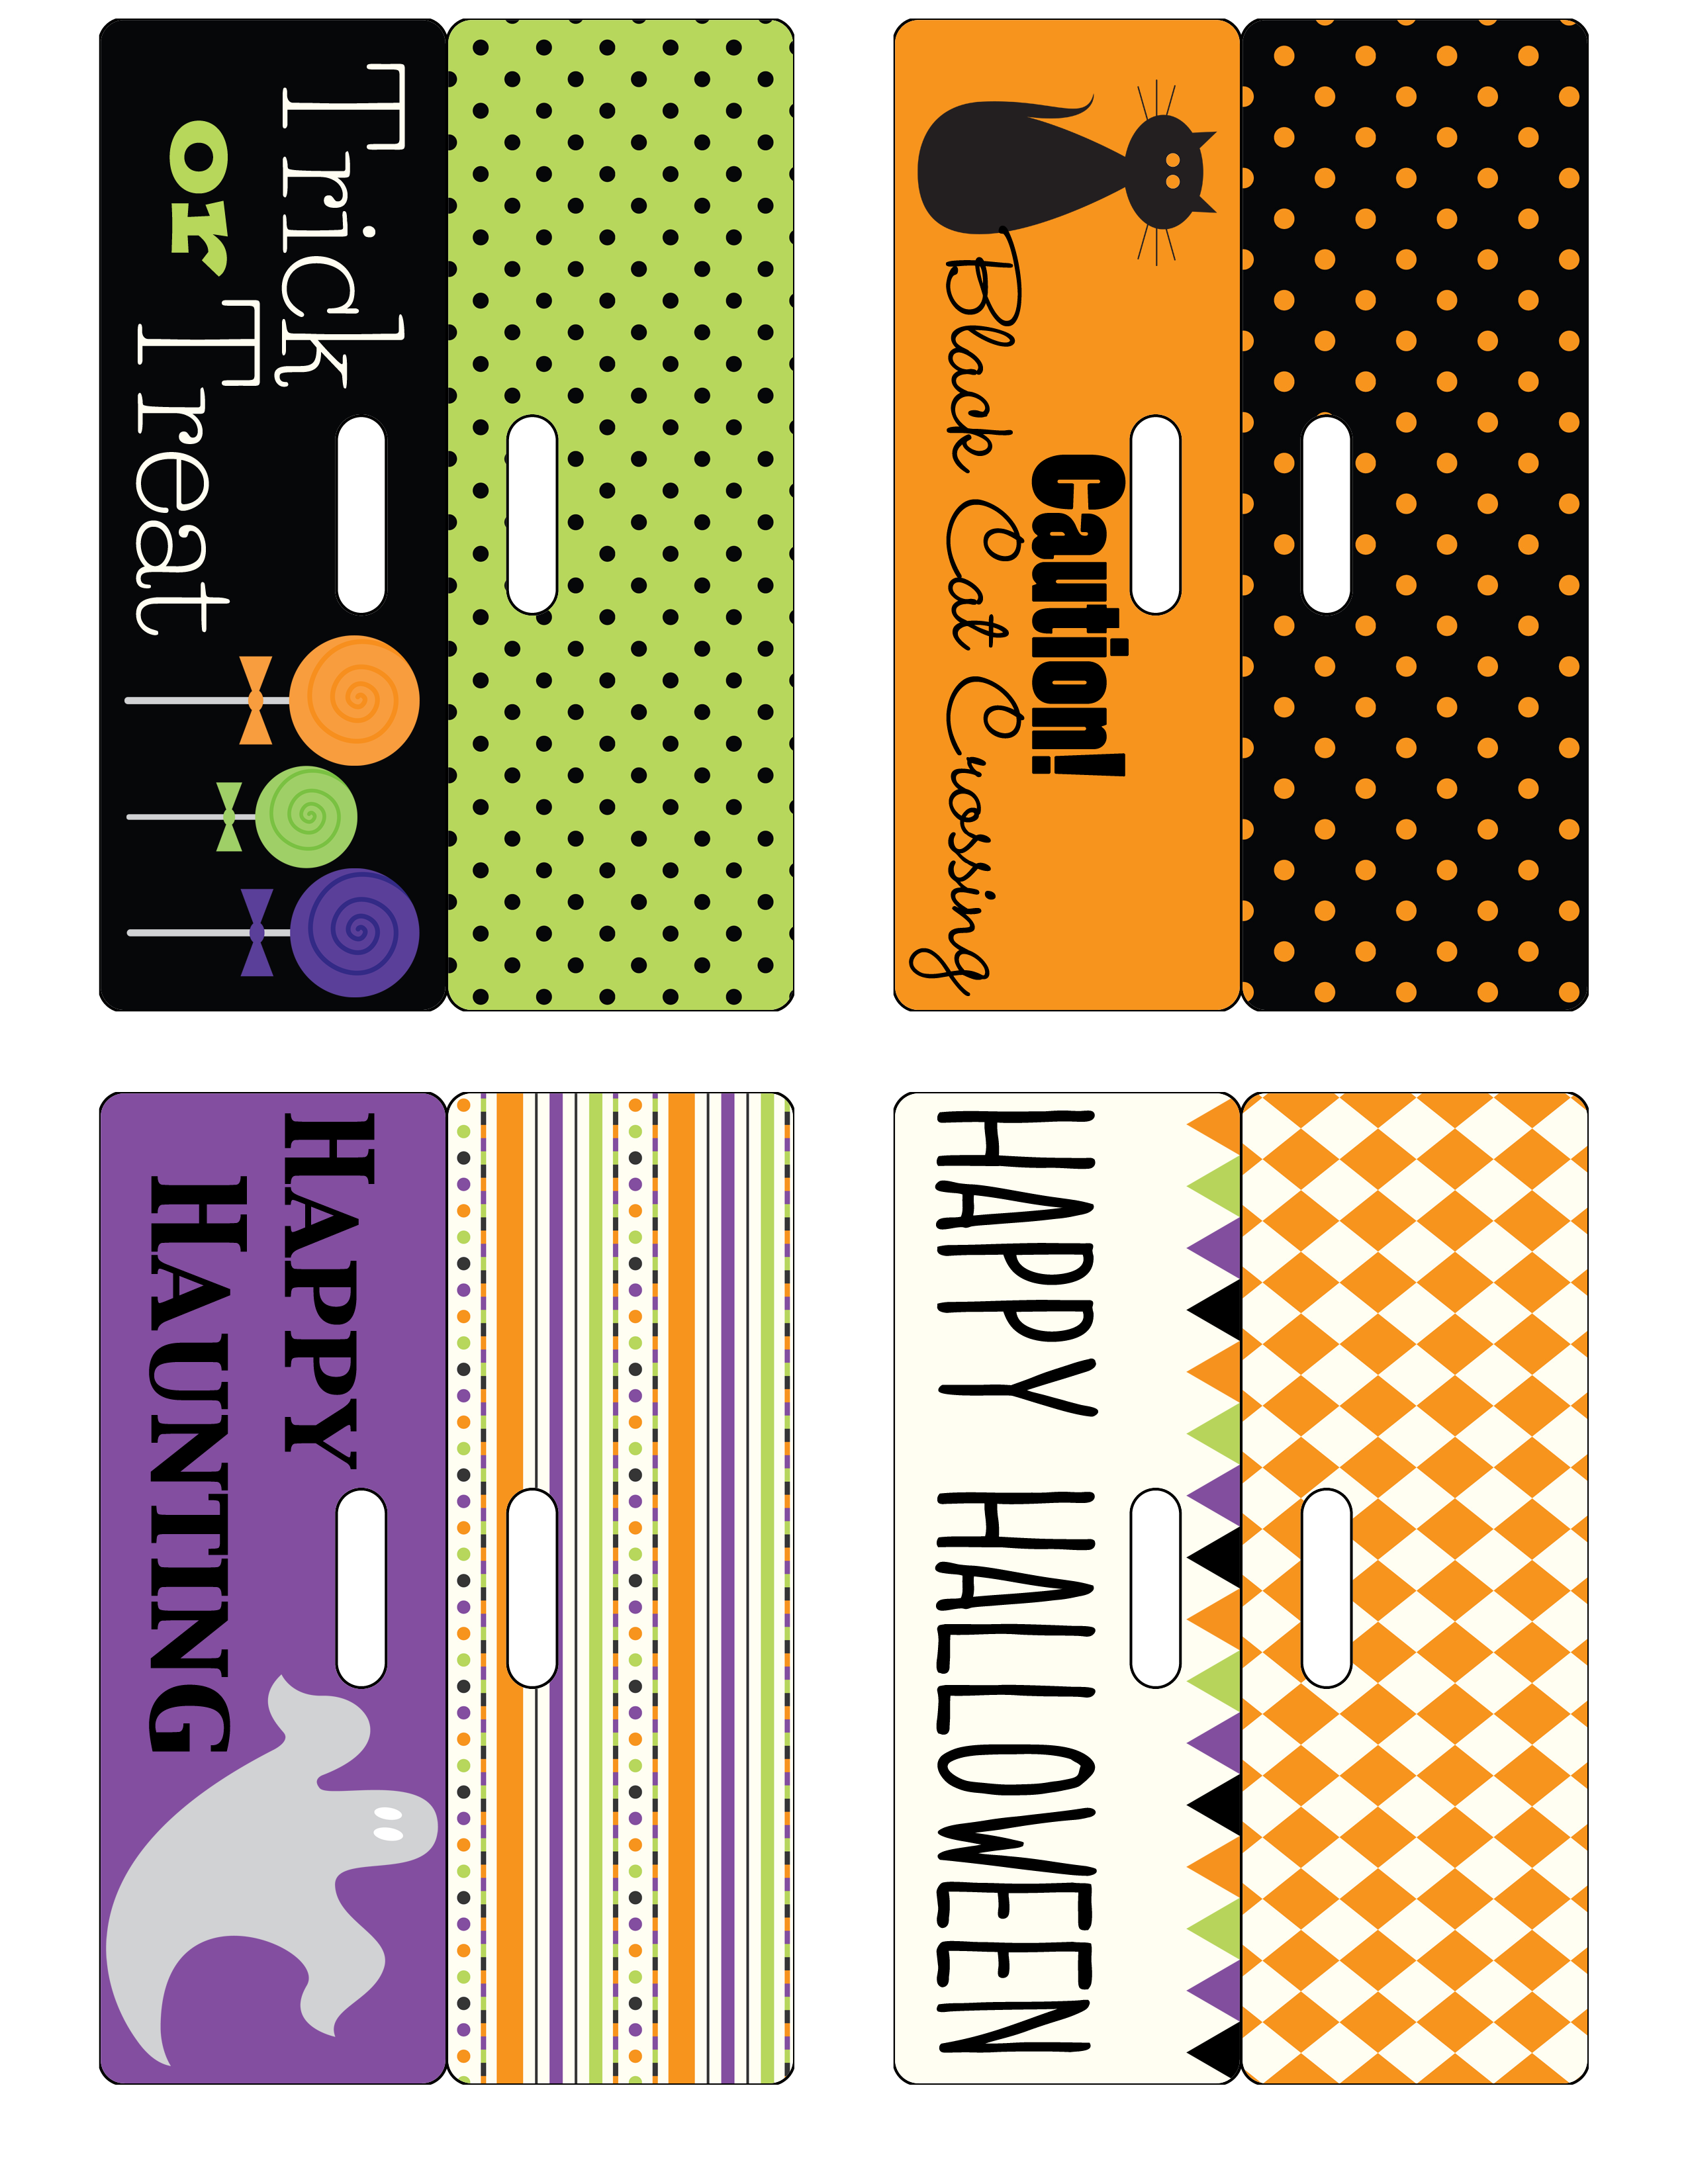 image about Free Printable Bag Toppers Templates referred to as Halloween-Bag-Toppers - Designer Weblogs